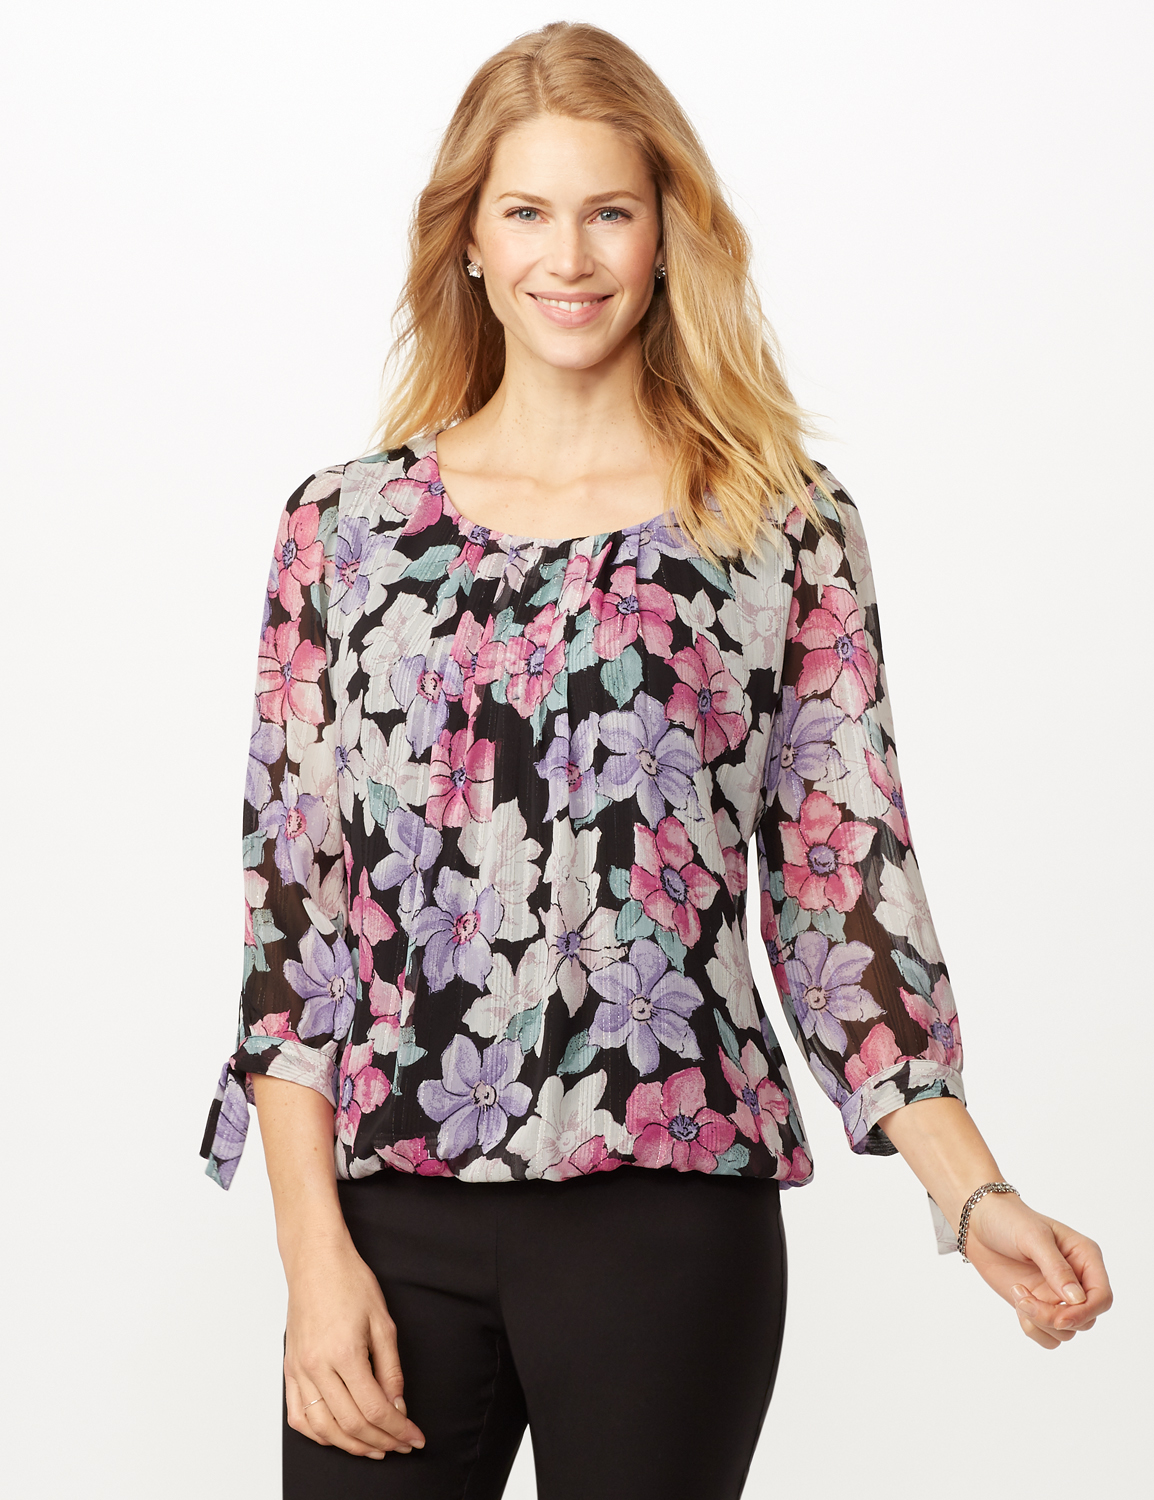 Bright Floral Bubble Hem Top with Tie Sleeve -Multi - Front